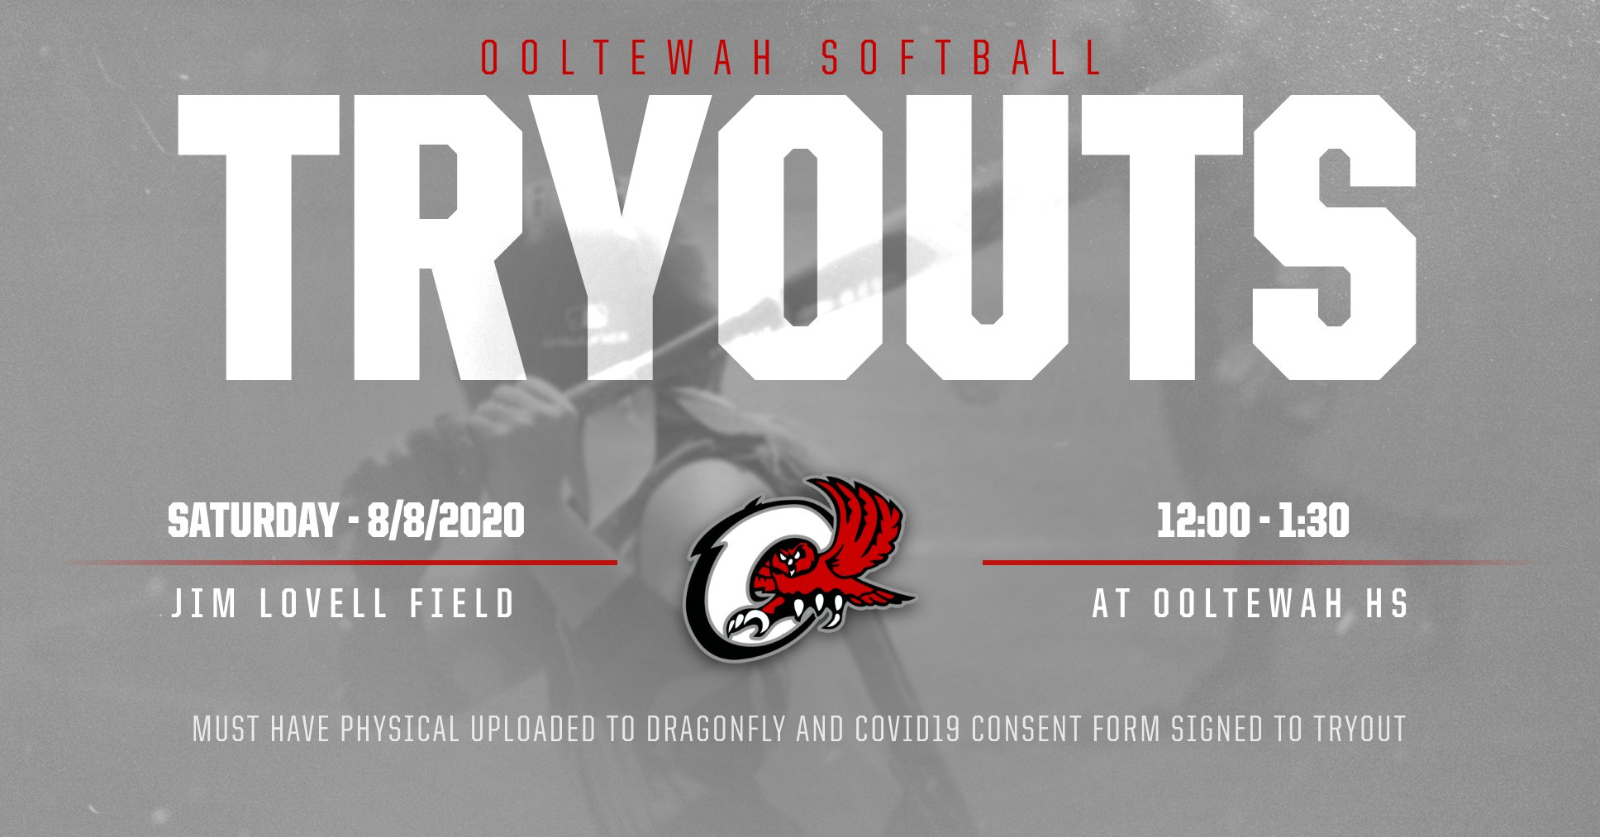 2020-21 Ooltewah Softball Tryouts Scheduled